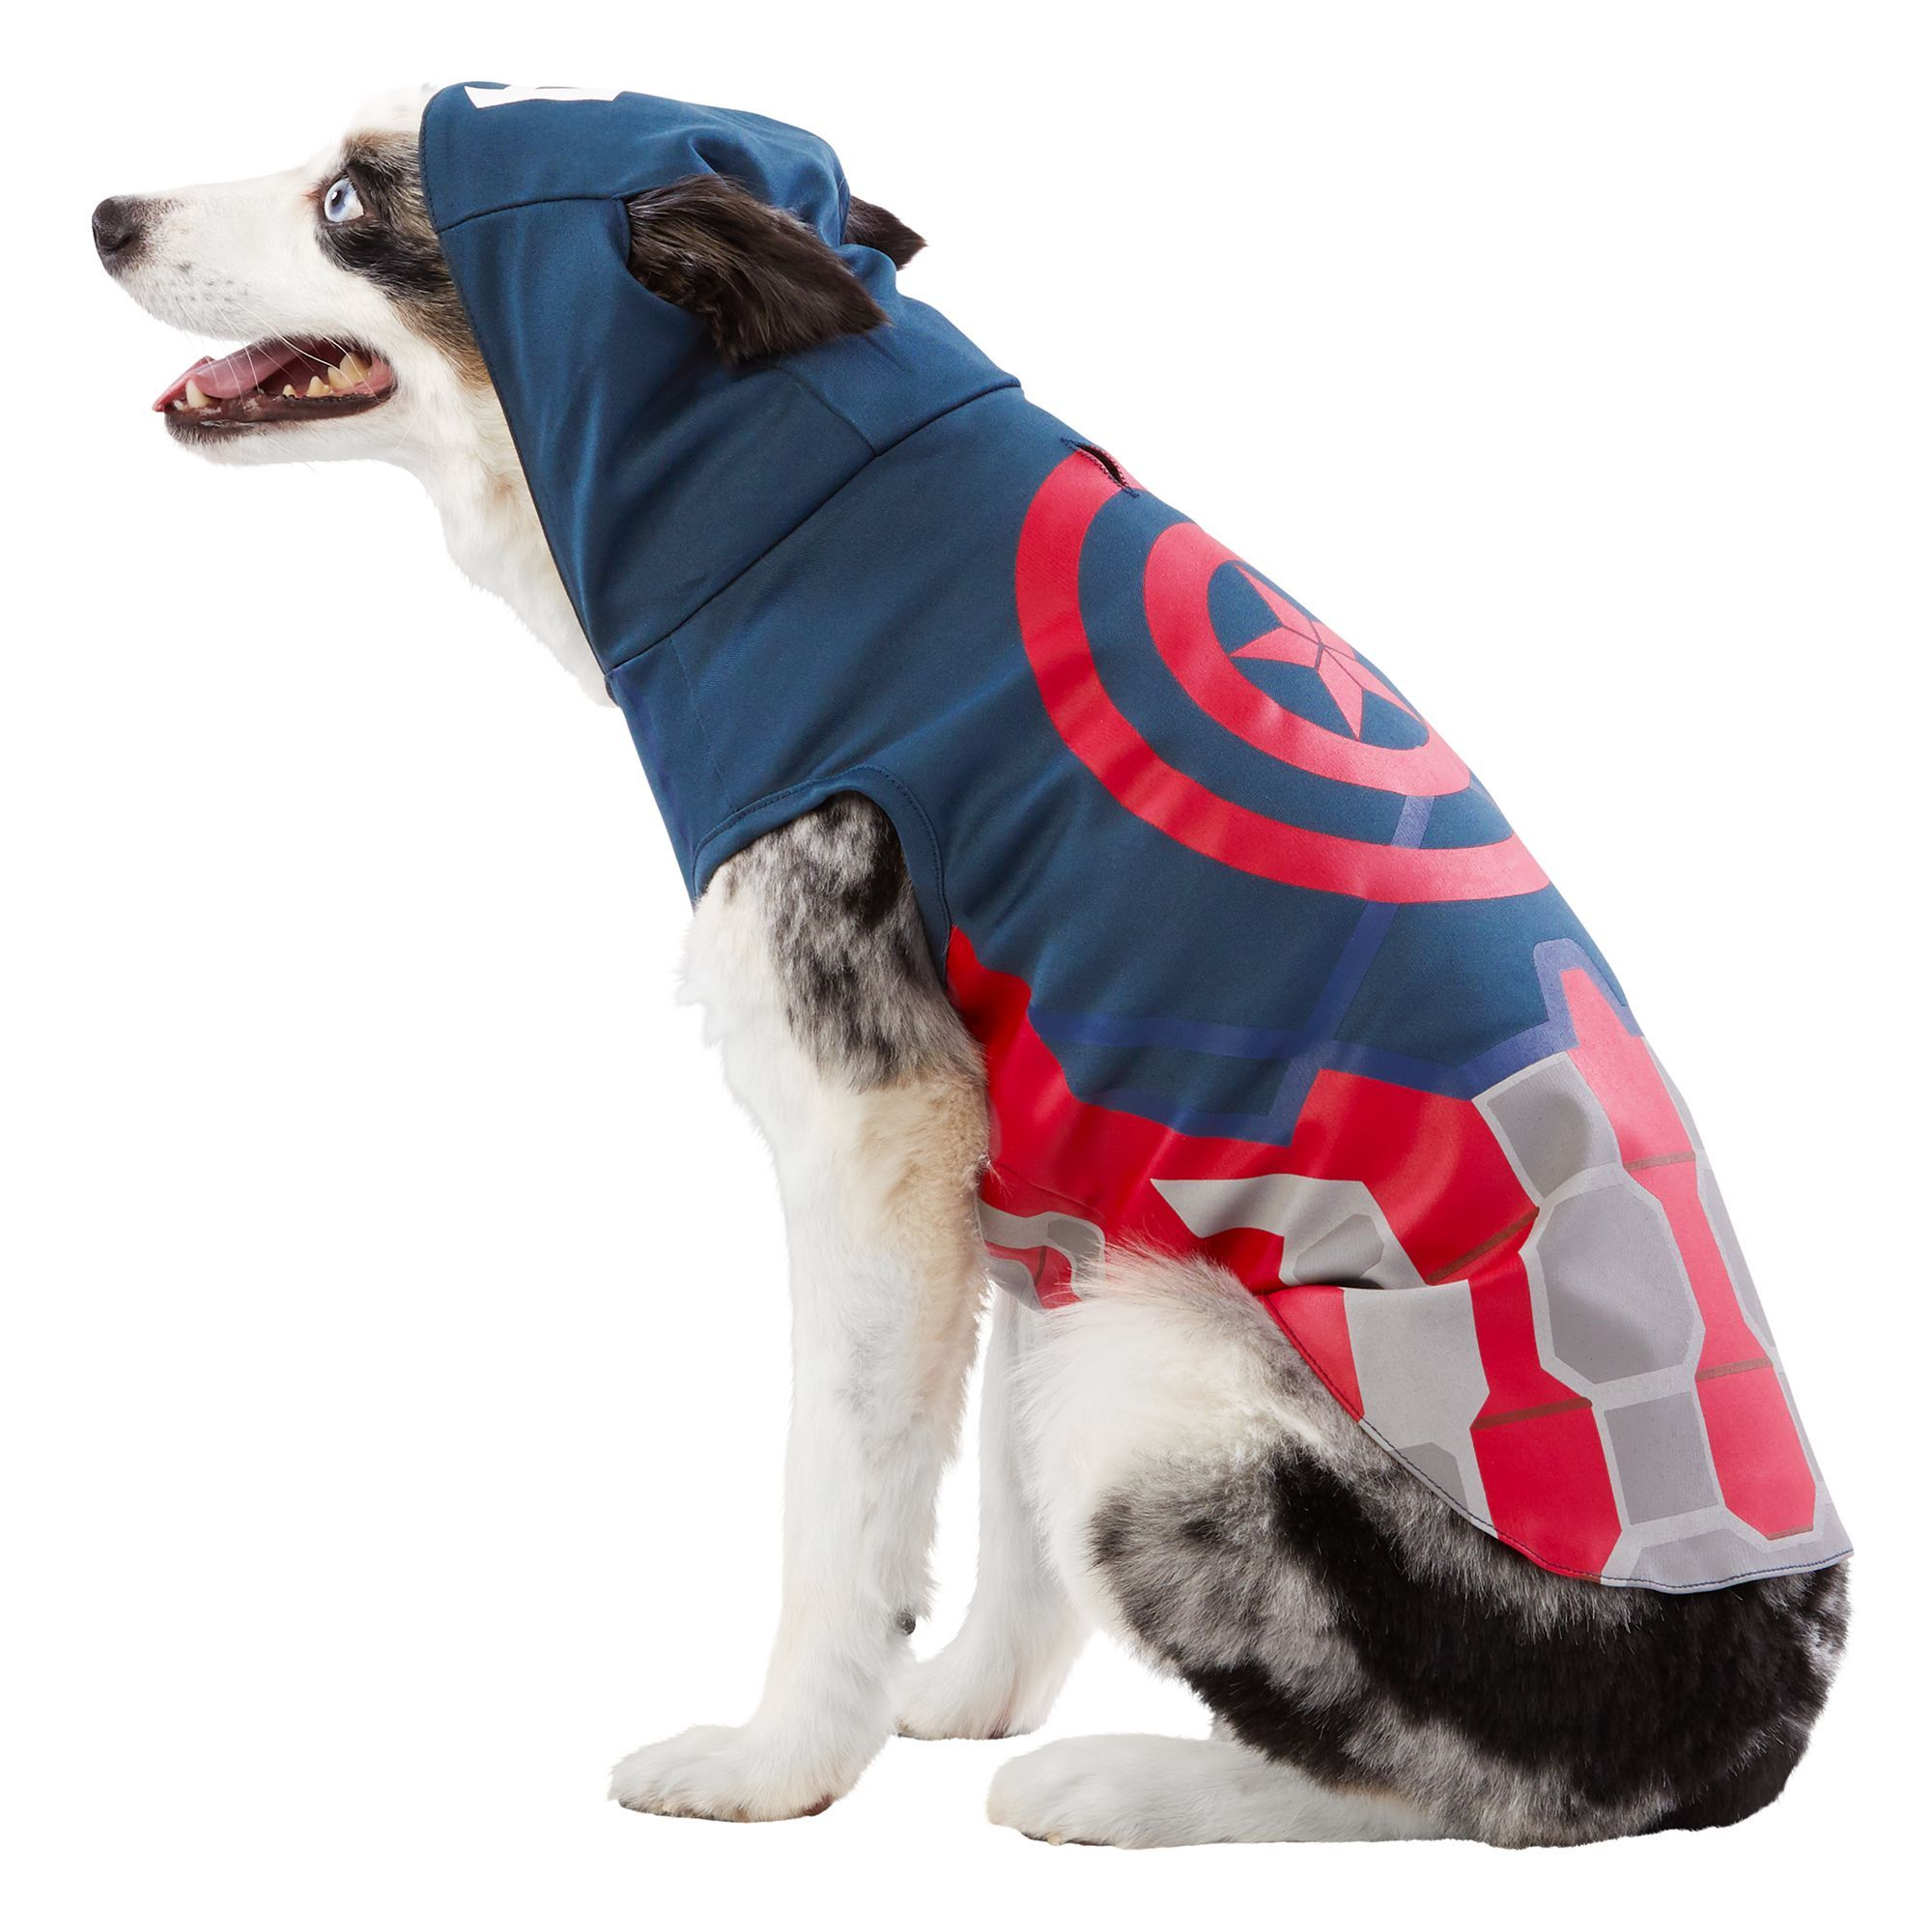 Marvel Comics Captain America Pet Costume Size Medium Black Blue Grey Pet Costumes Cute Funny Dogs Pets Find captain costumes in canada | visit kijiji classifieds to buy, sell, or trade almost anything! pinterest